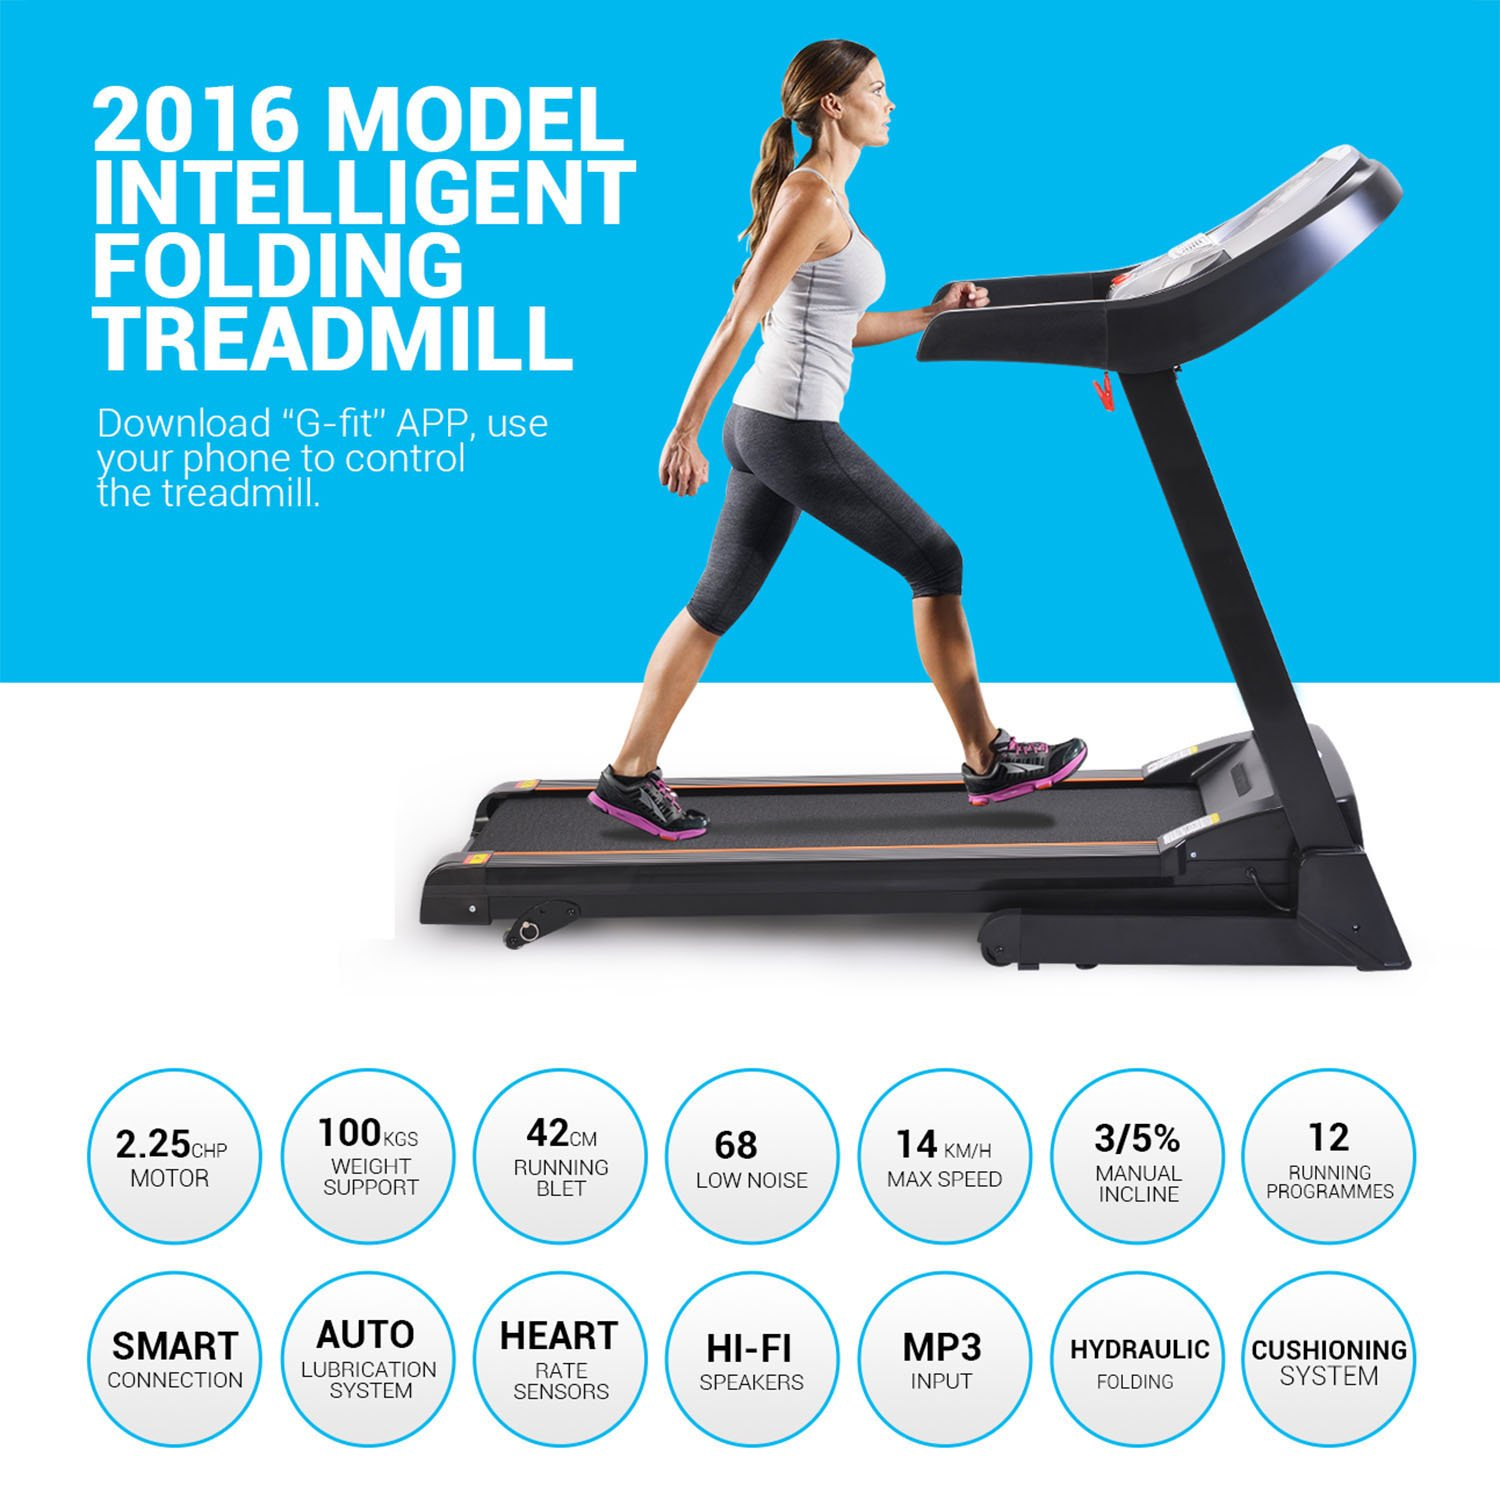 Miageek Fitness Folding Electric Jogging Treadmill with Smartphone APP Control, Walking Running Exercise Machine Incline Trainer Equipment Easy Assembly (2.25 HP - Black) by Miageek (Image #6)